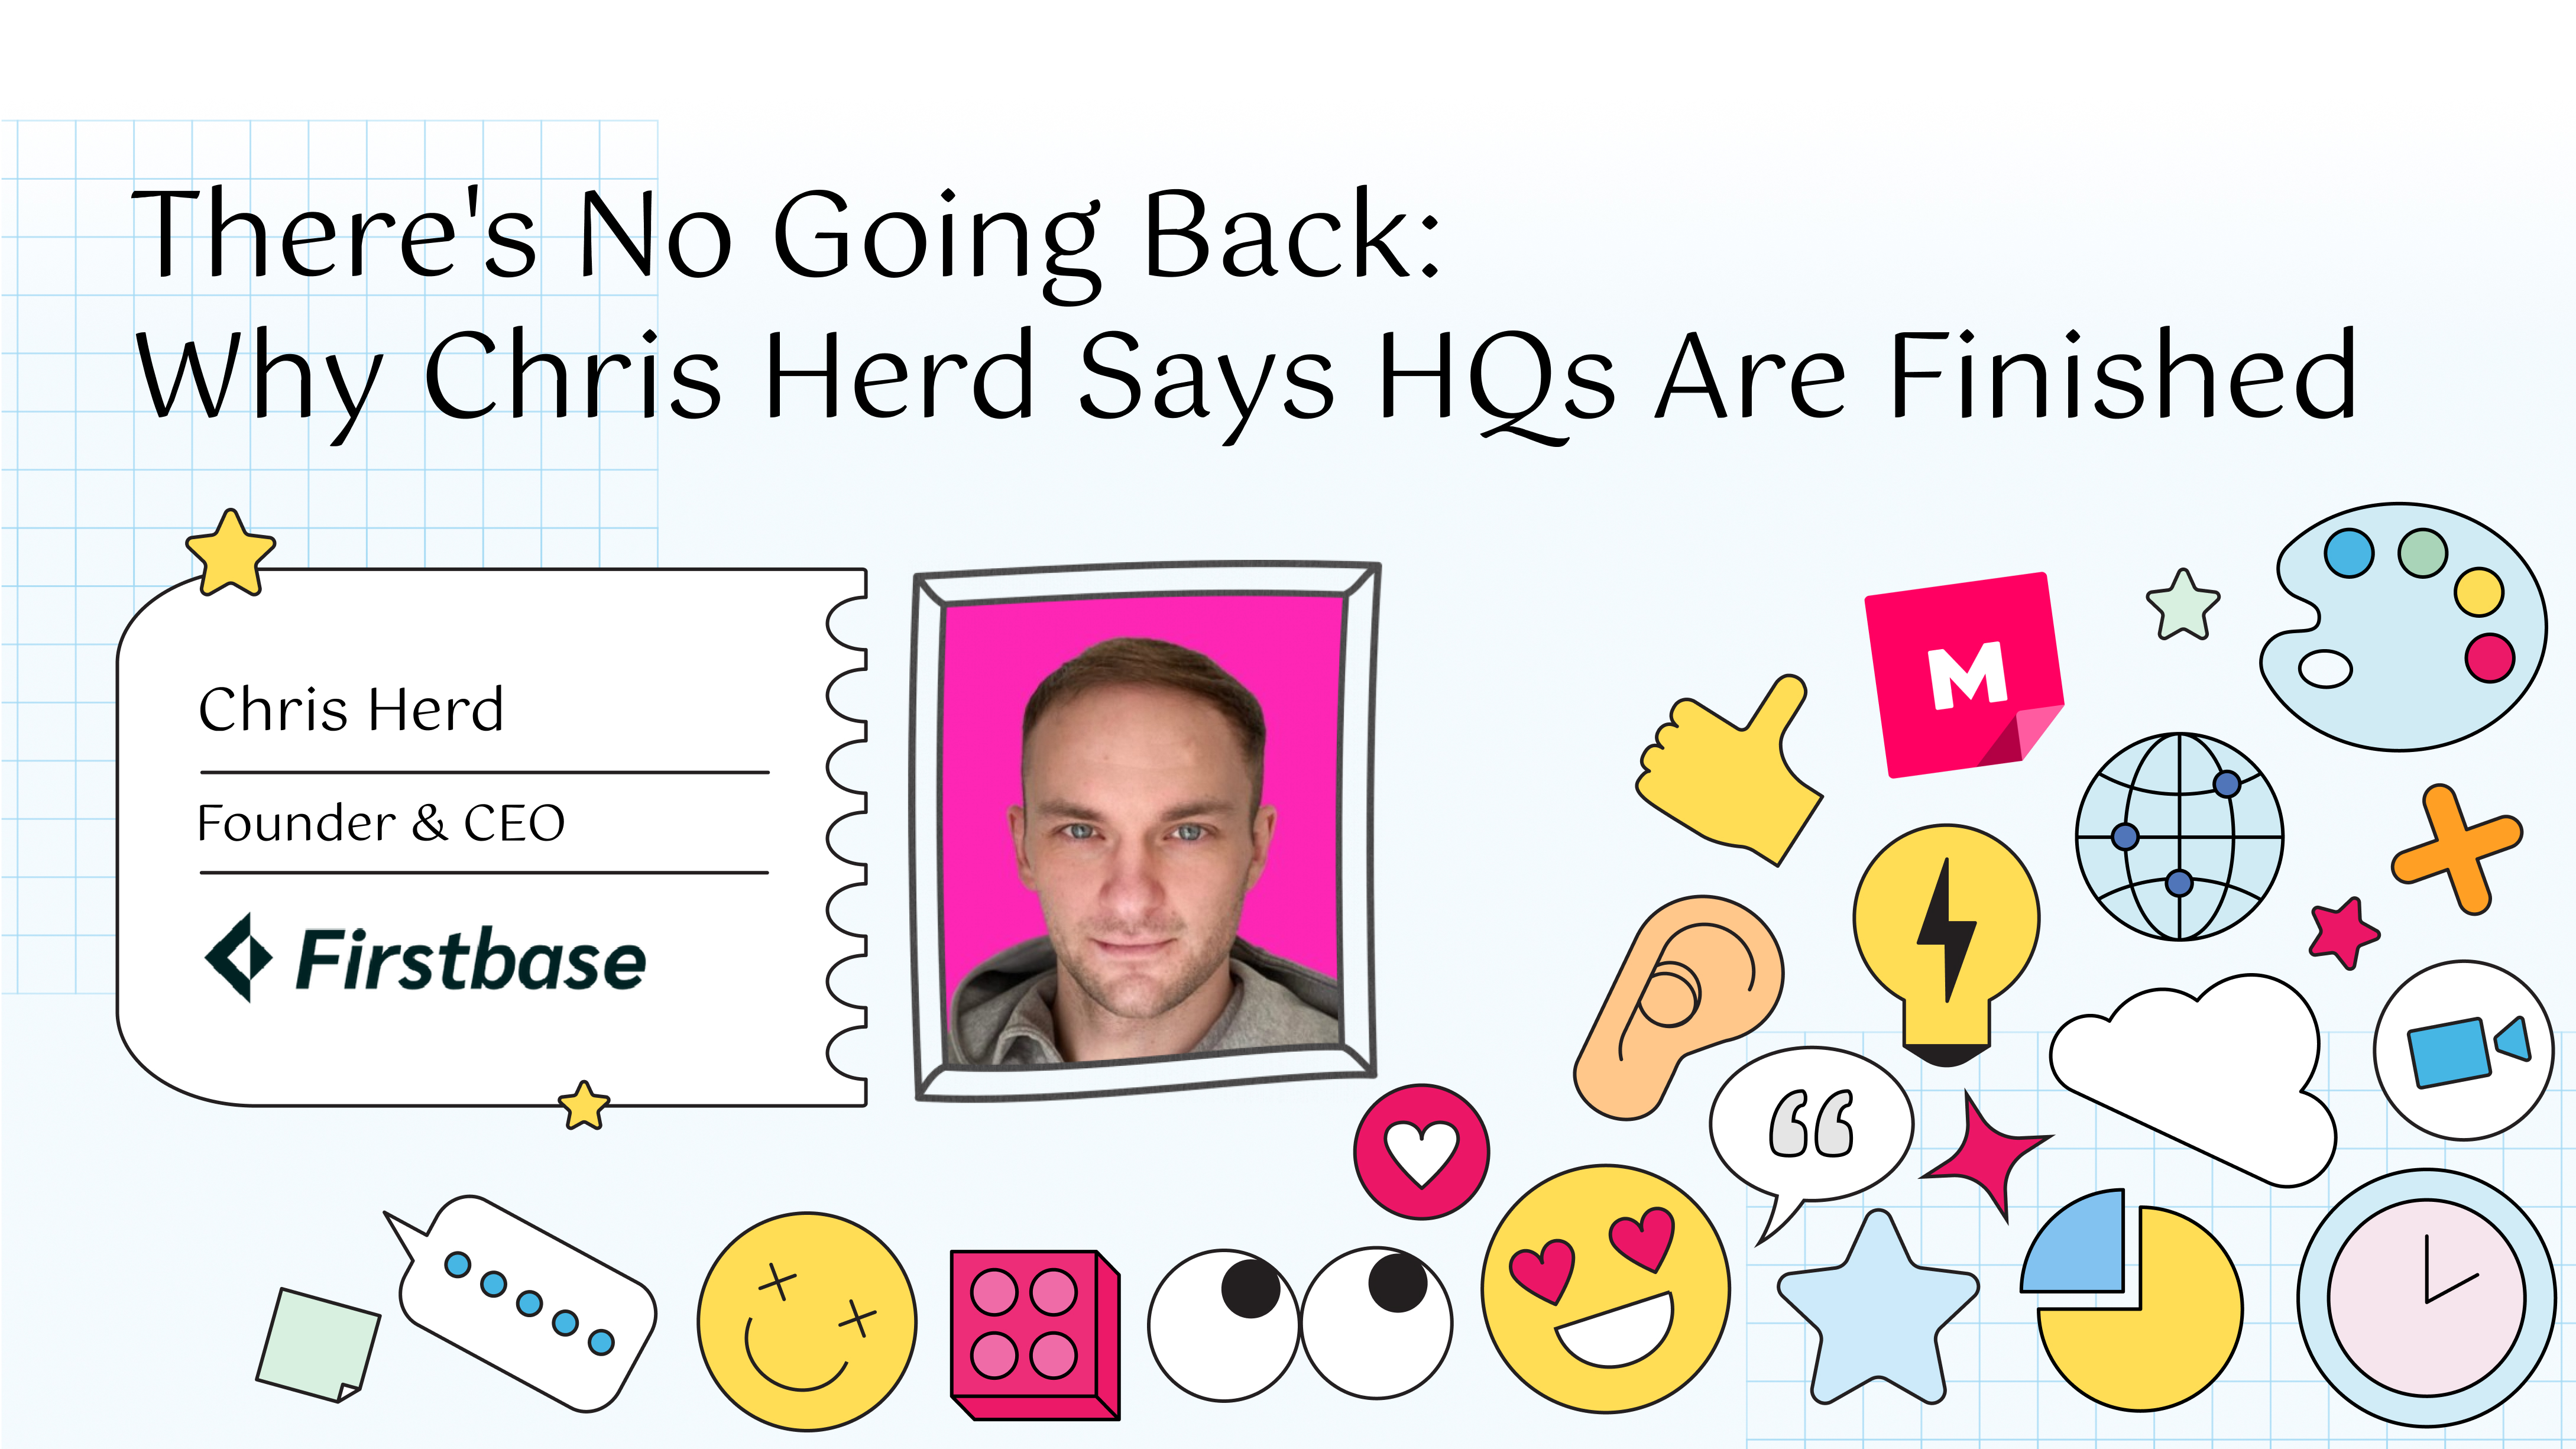 There's No Going Back: Why Chris Herd Says HQs Are Finished